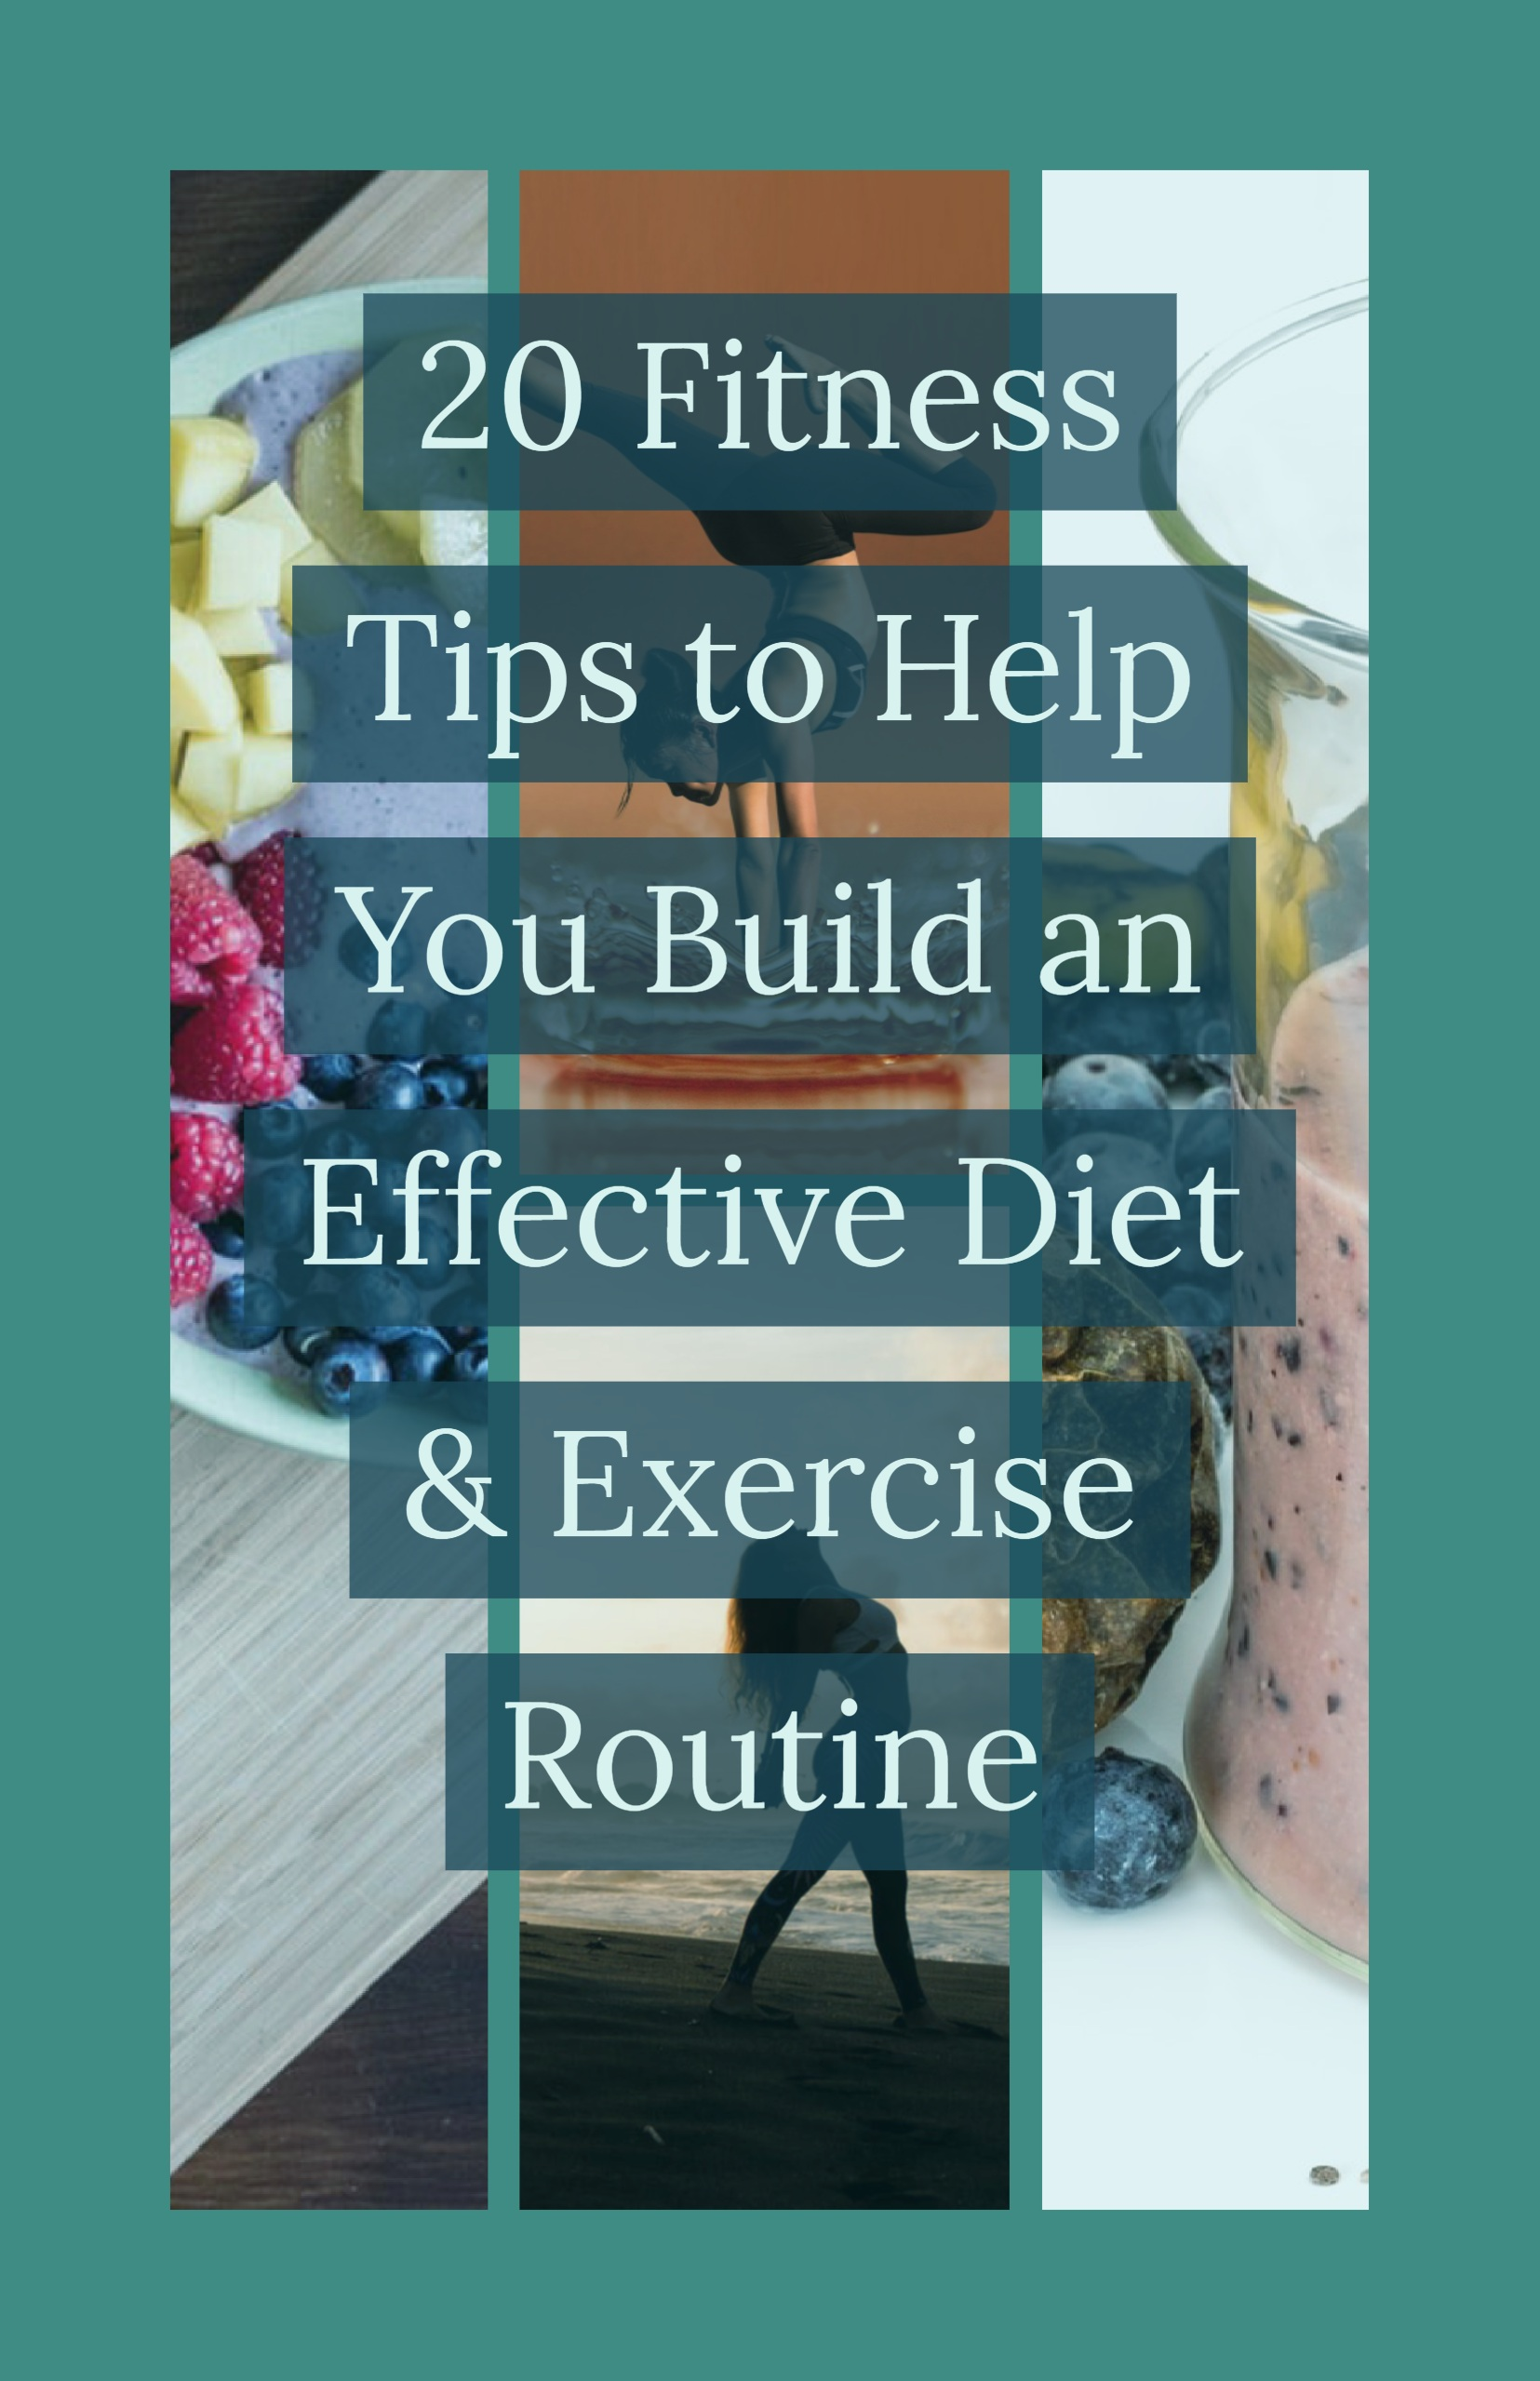 20 fitness tips to help you build an effective diet & exercise routine